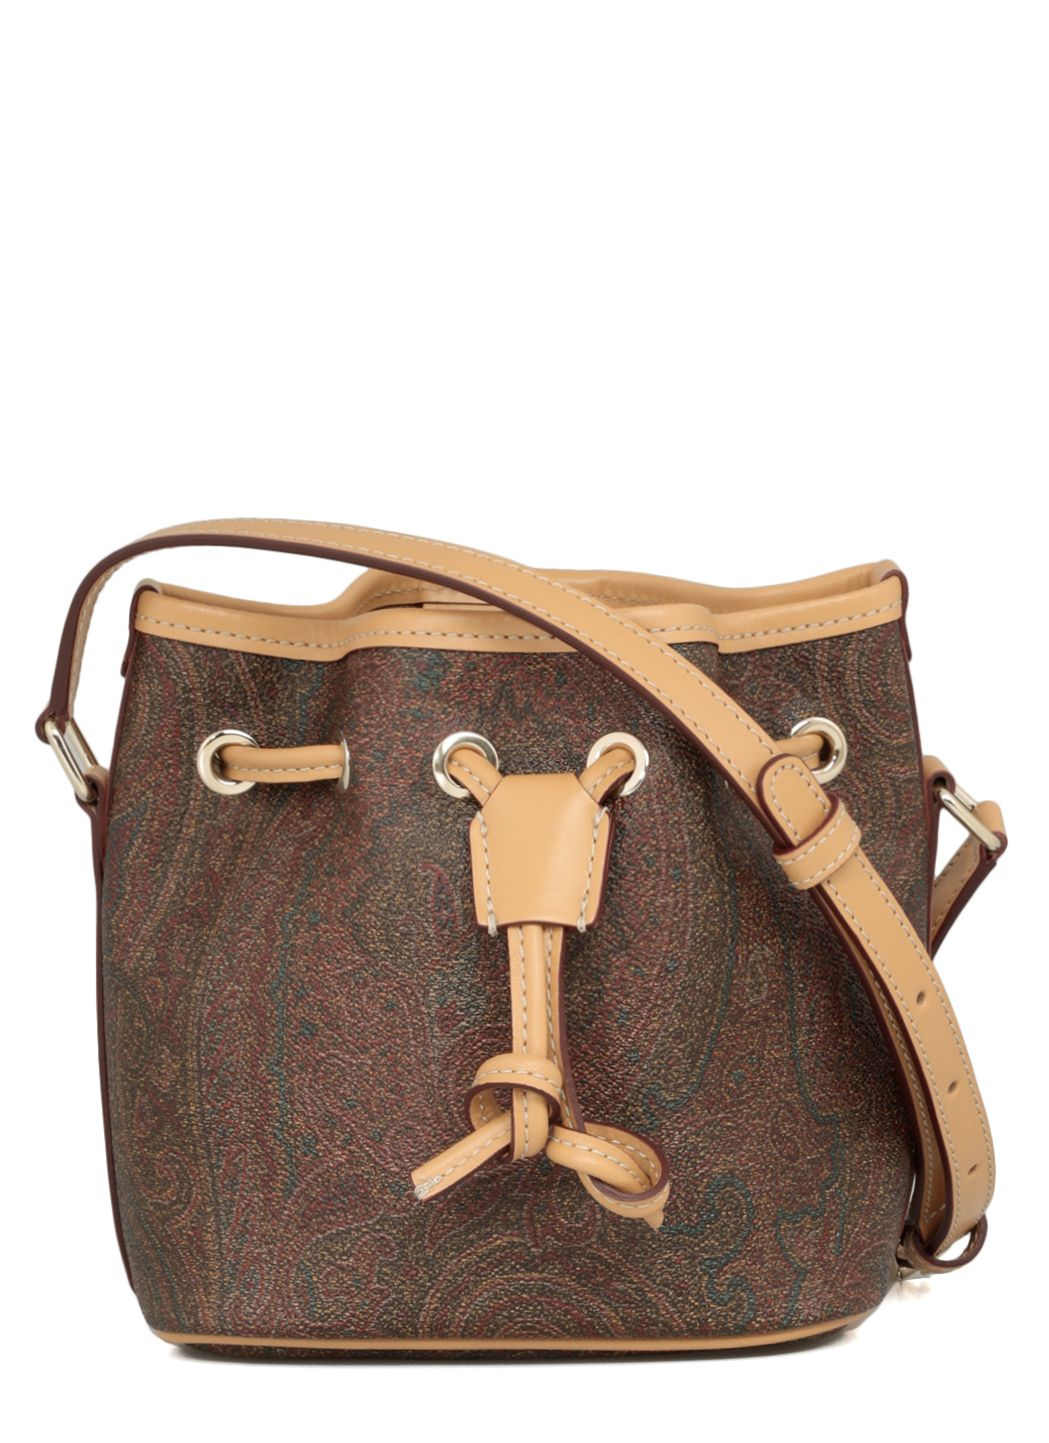 Paysley satchel minibag